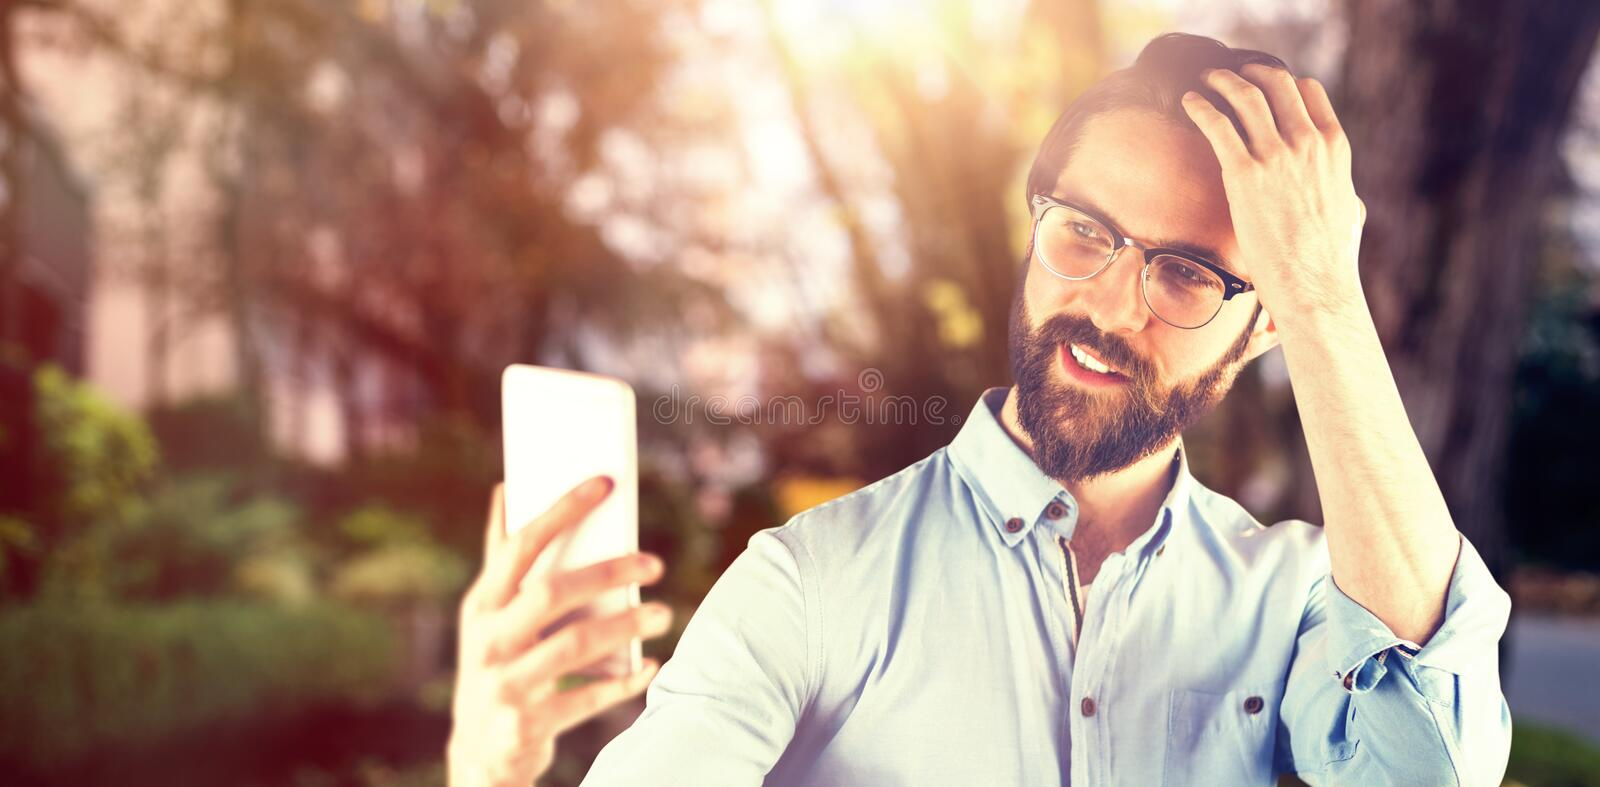 Composite image of man taking selfie with hand in hair royalty free stock images